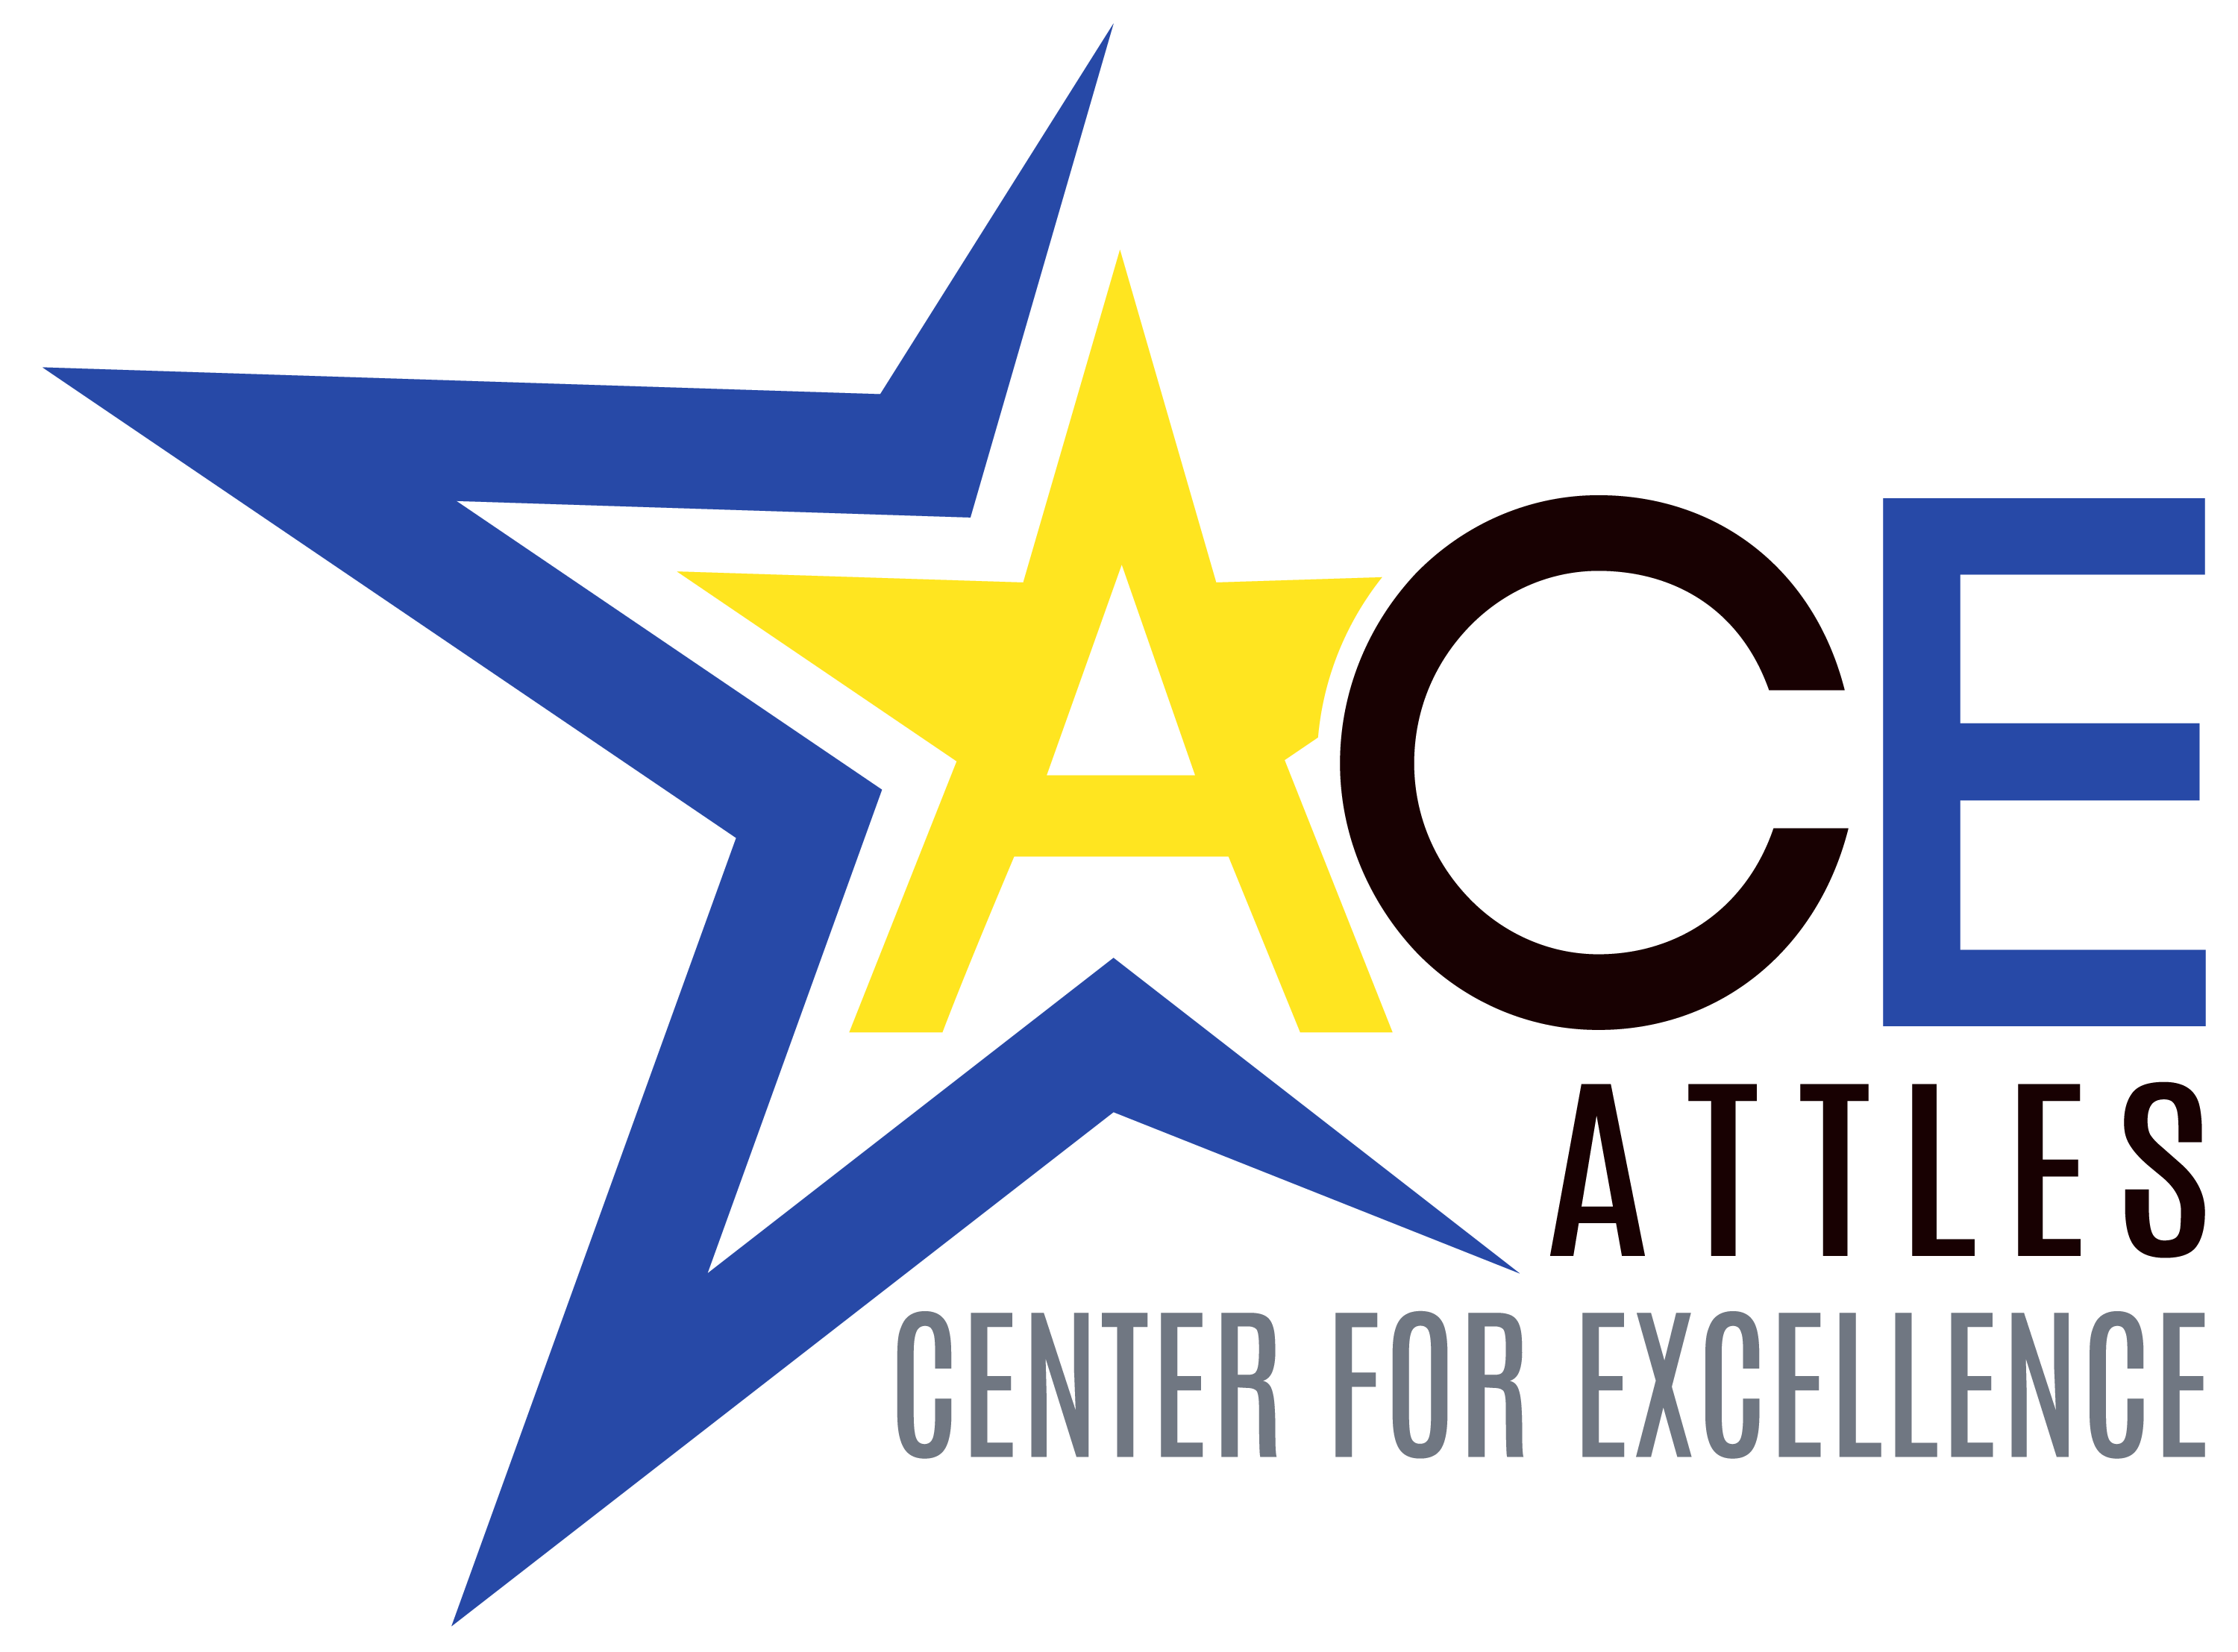 Attles Center for Excellence